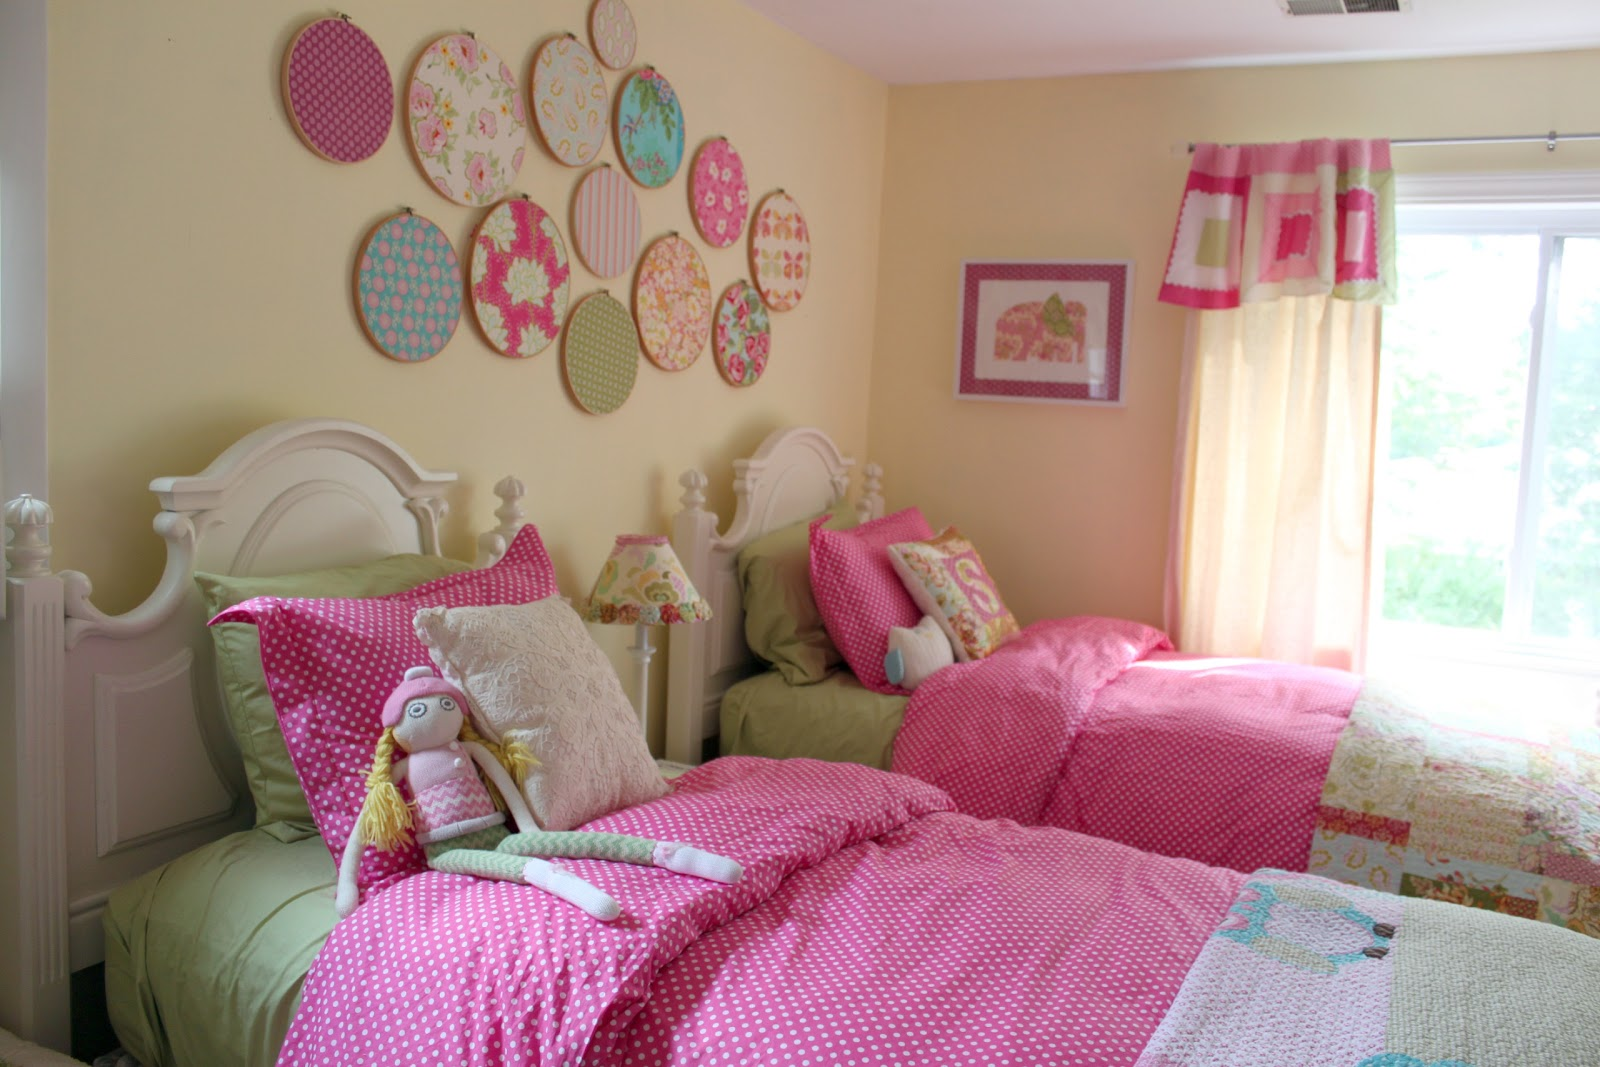 Decorating girls shared toddler bedroom the cottage mama - Small girls bedroom decor ...